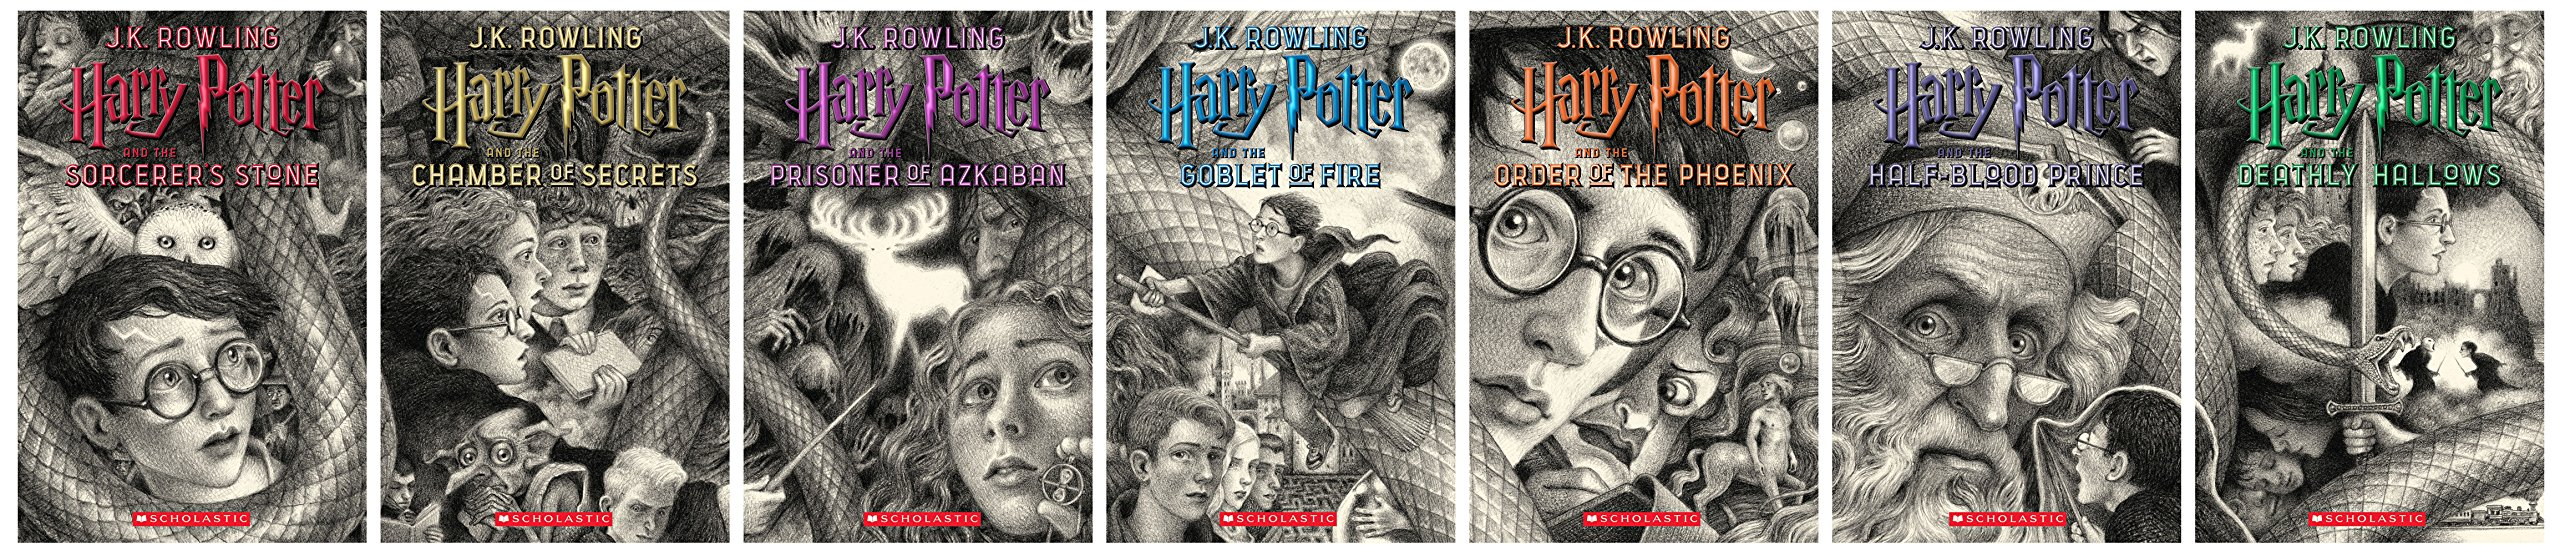 Harry Potter Books 1-7 Special Edition Boxed Set 도서 상세이미지